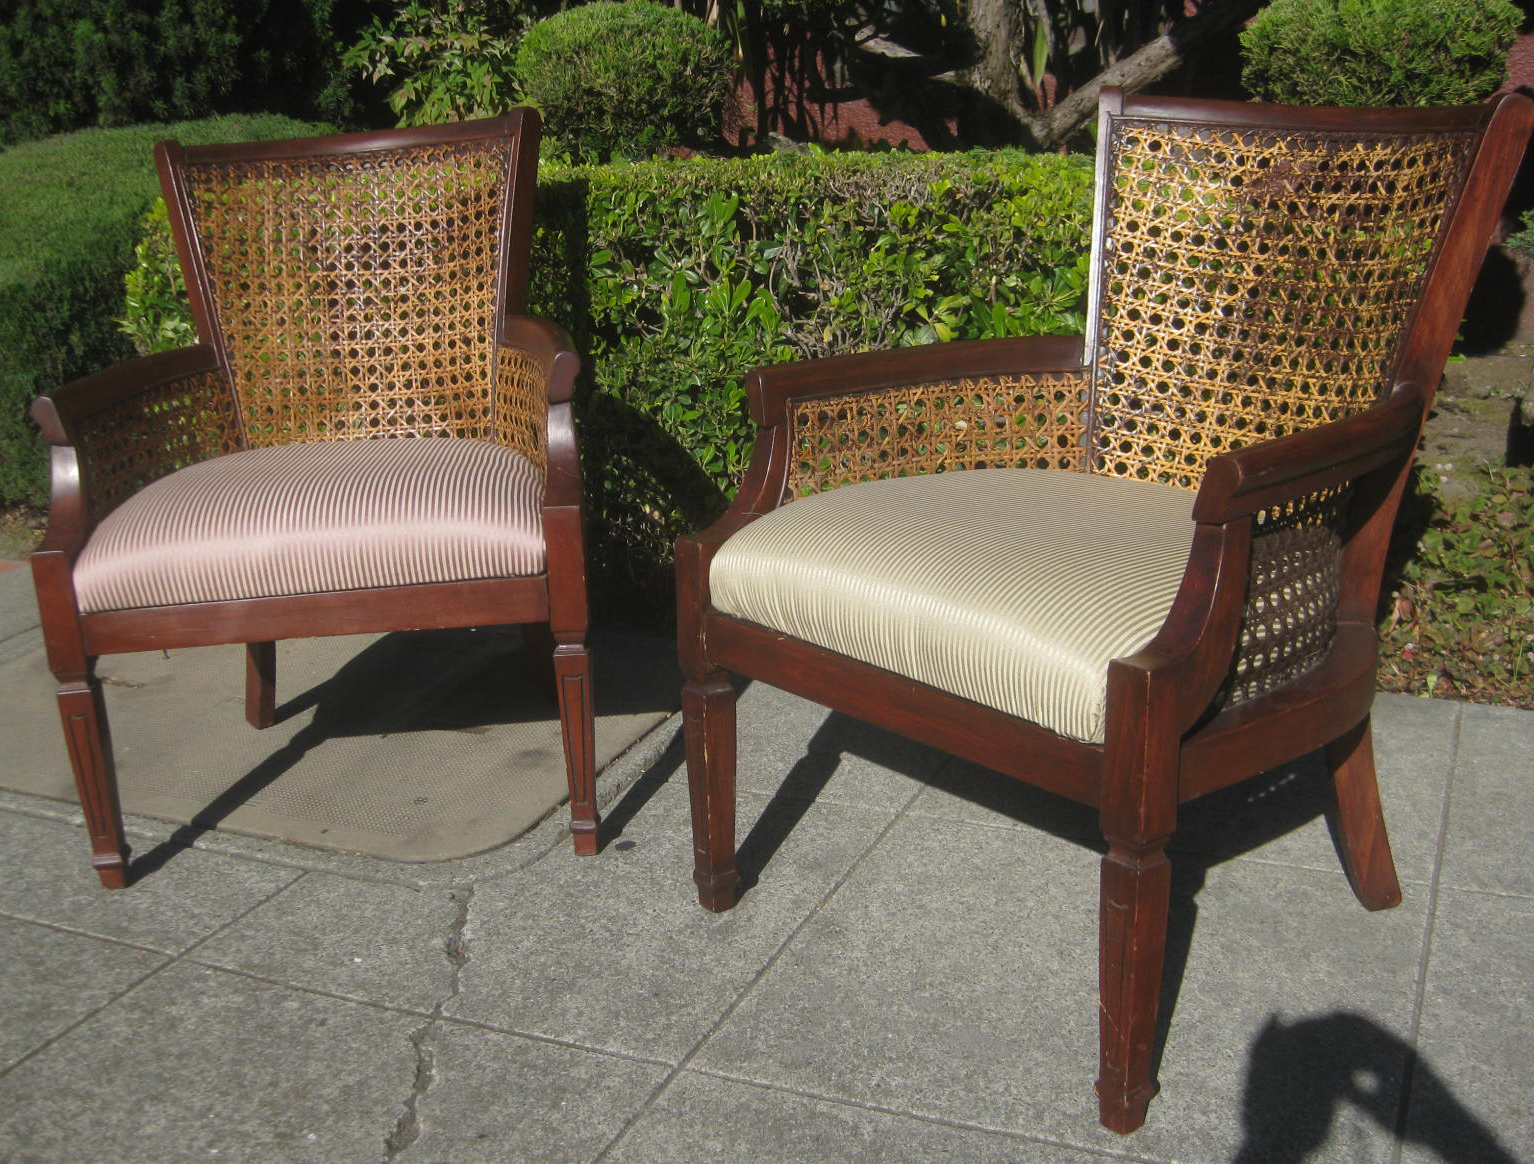 Sold pair of wicker and wood chairs 30 each